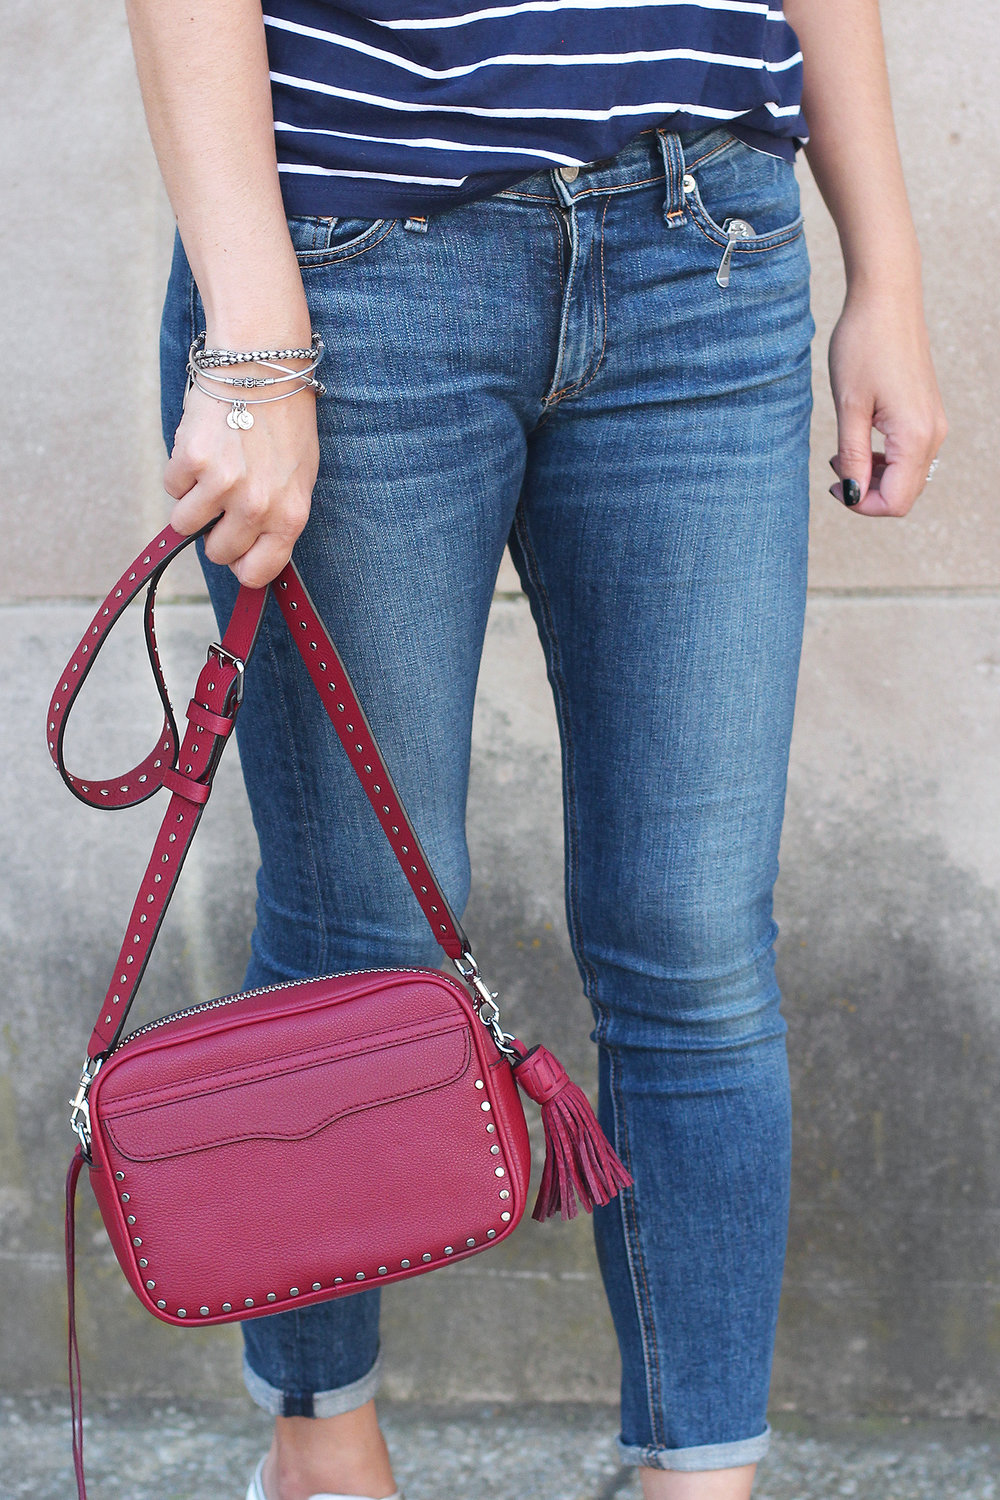 Red Crossbody Bag, Rag and Bone Jeans